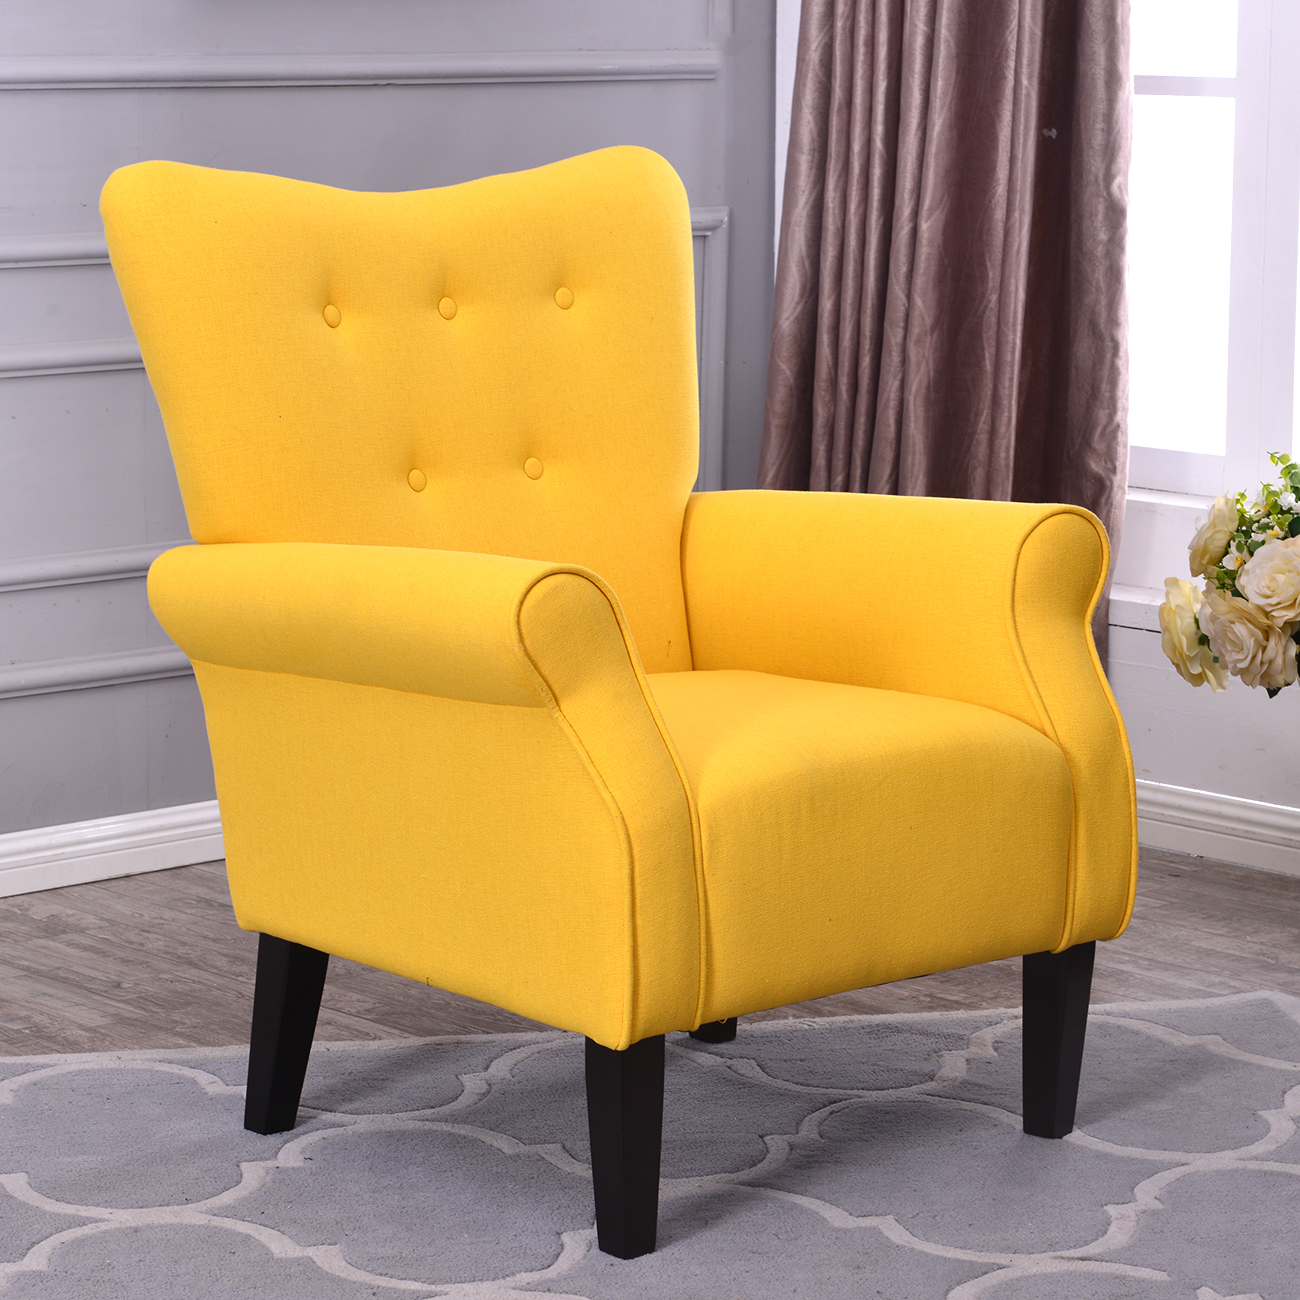 Arm Chair Accent Single Sofa Linen Fabric Upholstered Living Room Citrine Yellow Ebay